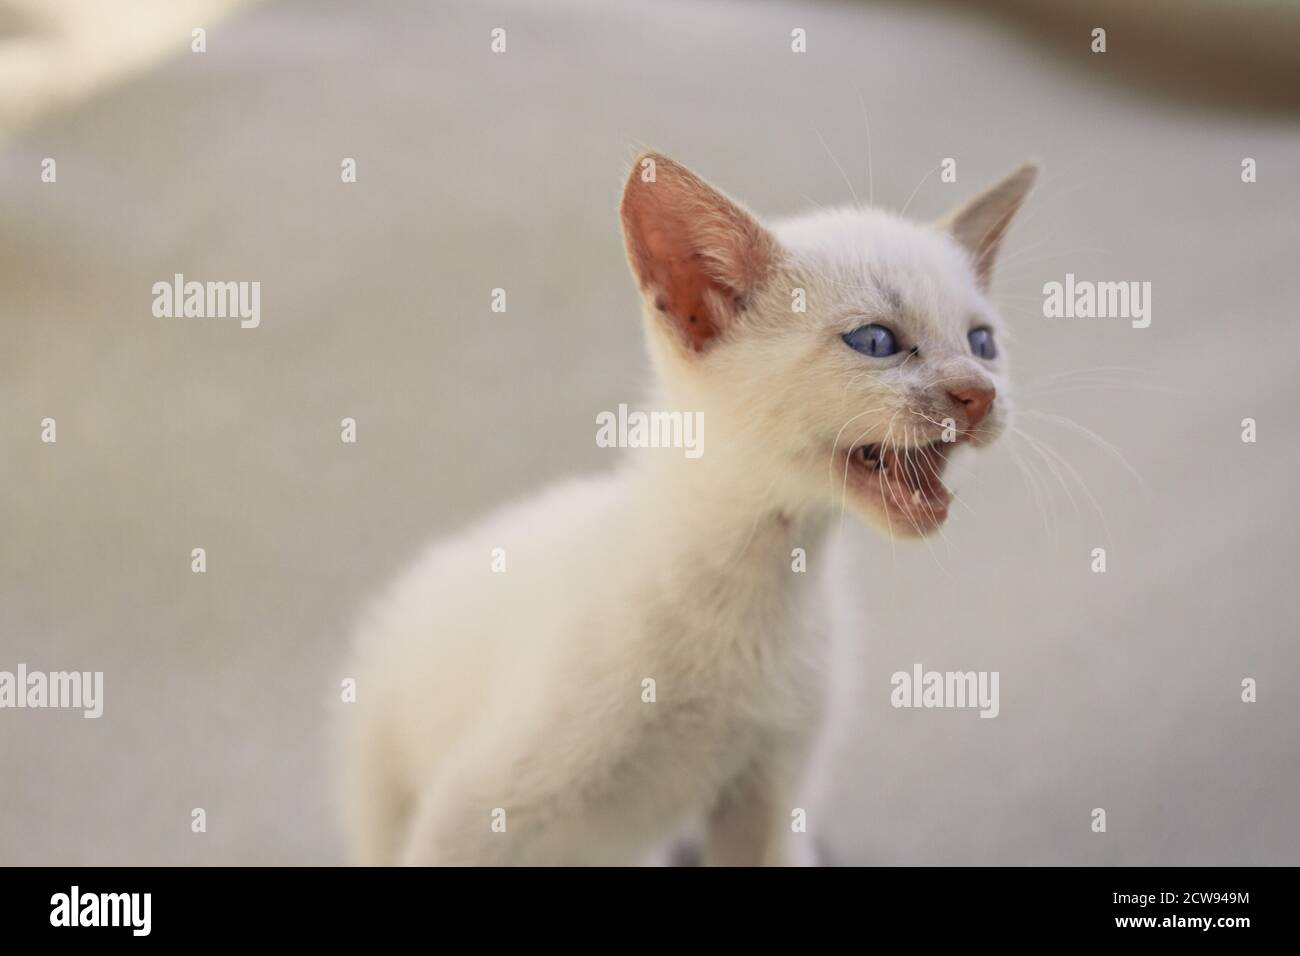 Blanc moelleux chiot chat mewing Banque D'Images